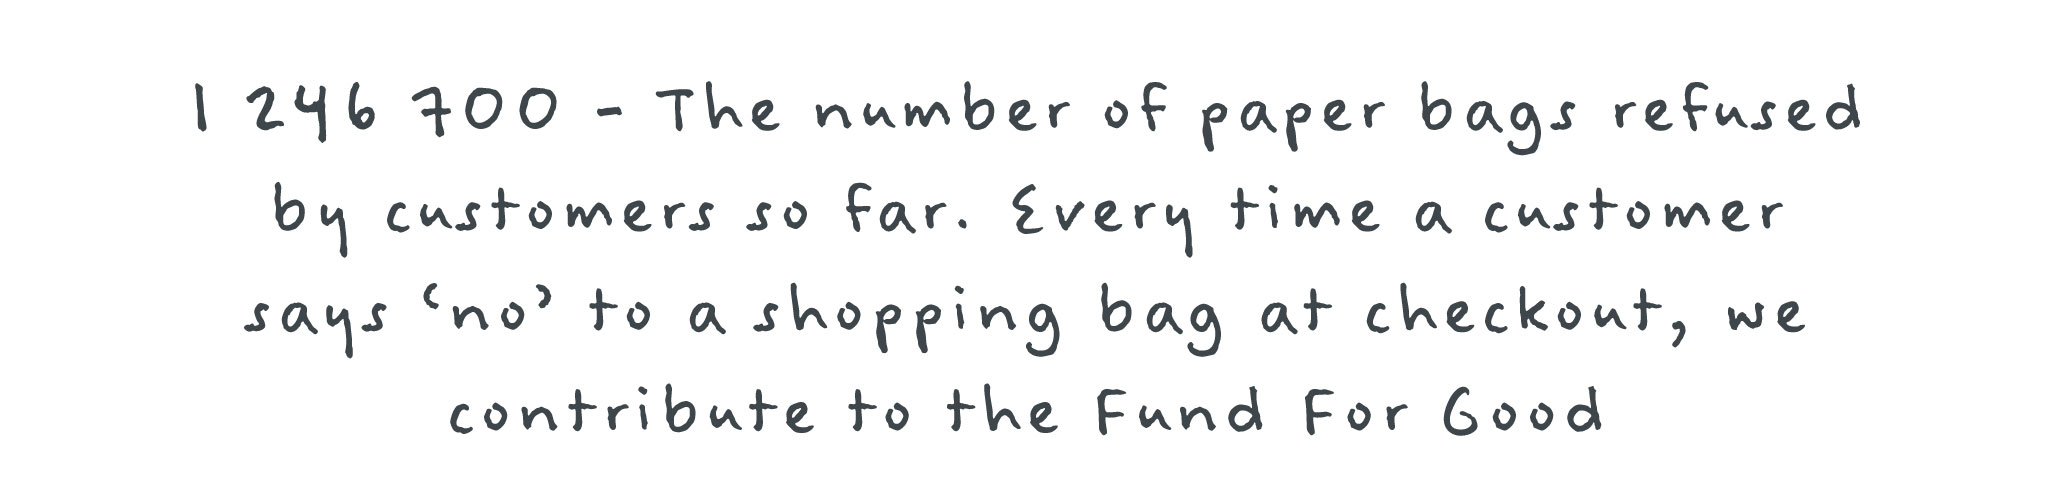 353,000 - The number of paper bags refused in the last year.